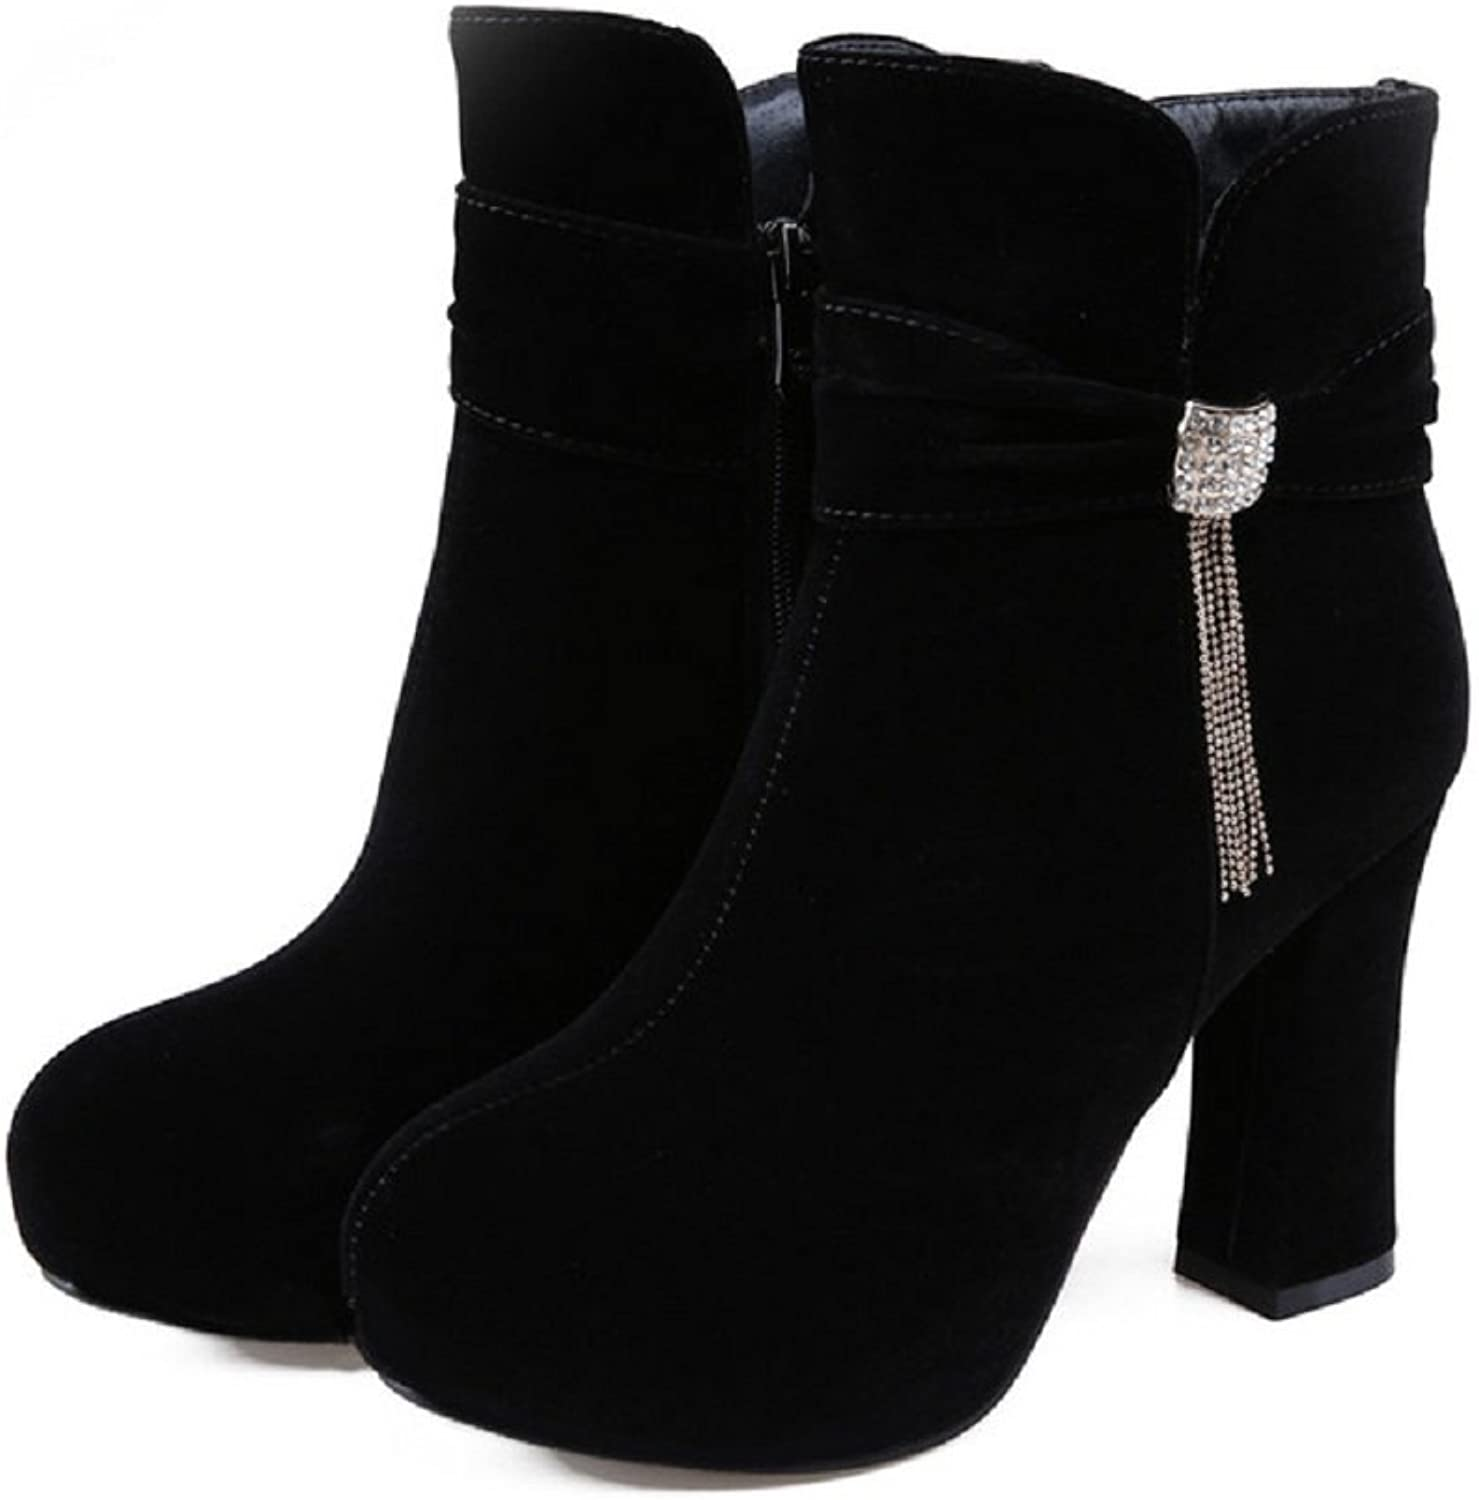 CLAKION Lucksender Round Toe High Heel with Tassel Pendant Ankle Boot Women